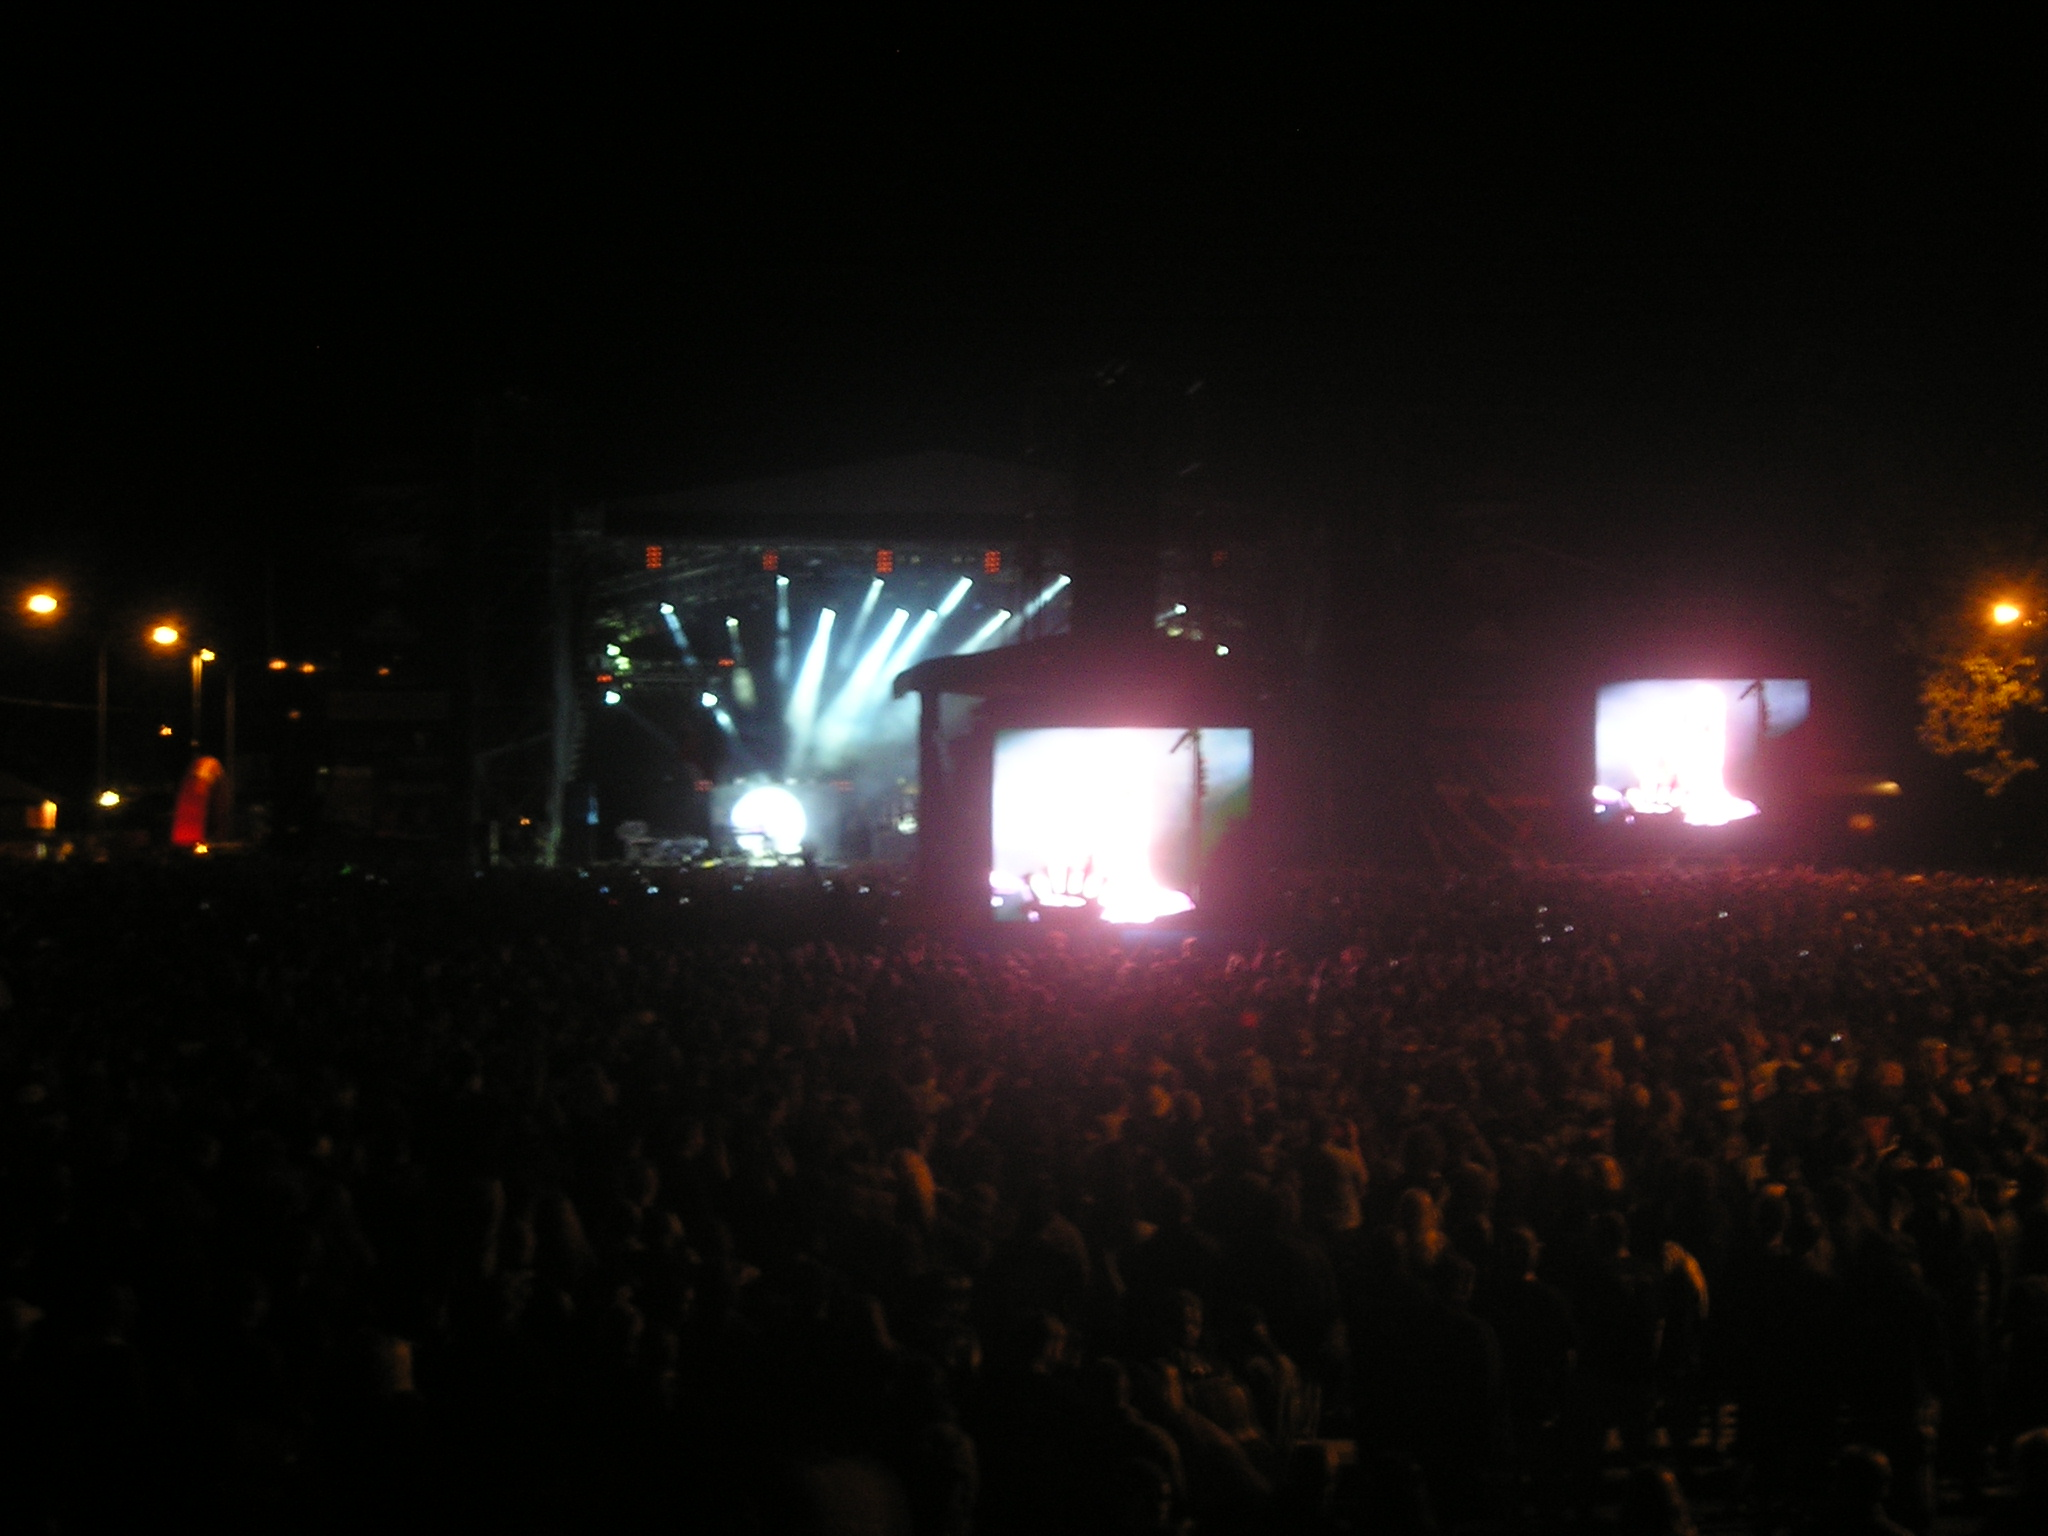 http://upload.wikimedia.org/wikipedia/commons/8/85/Masters_of_Rock_2009.jpg